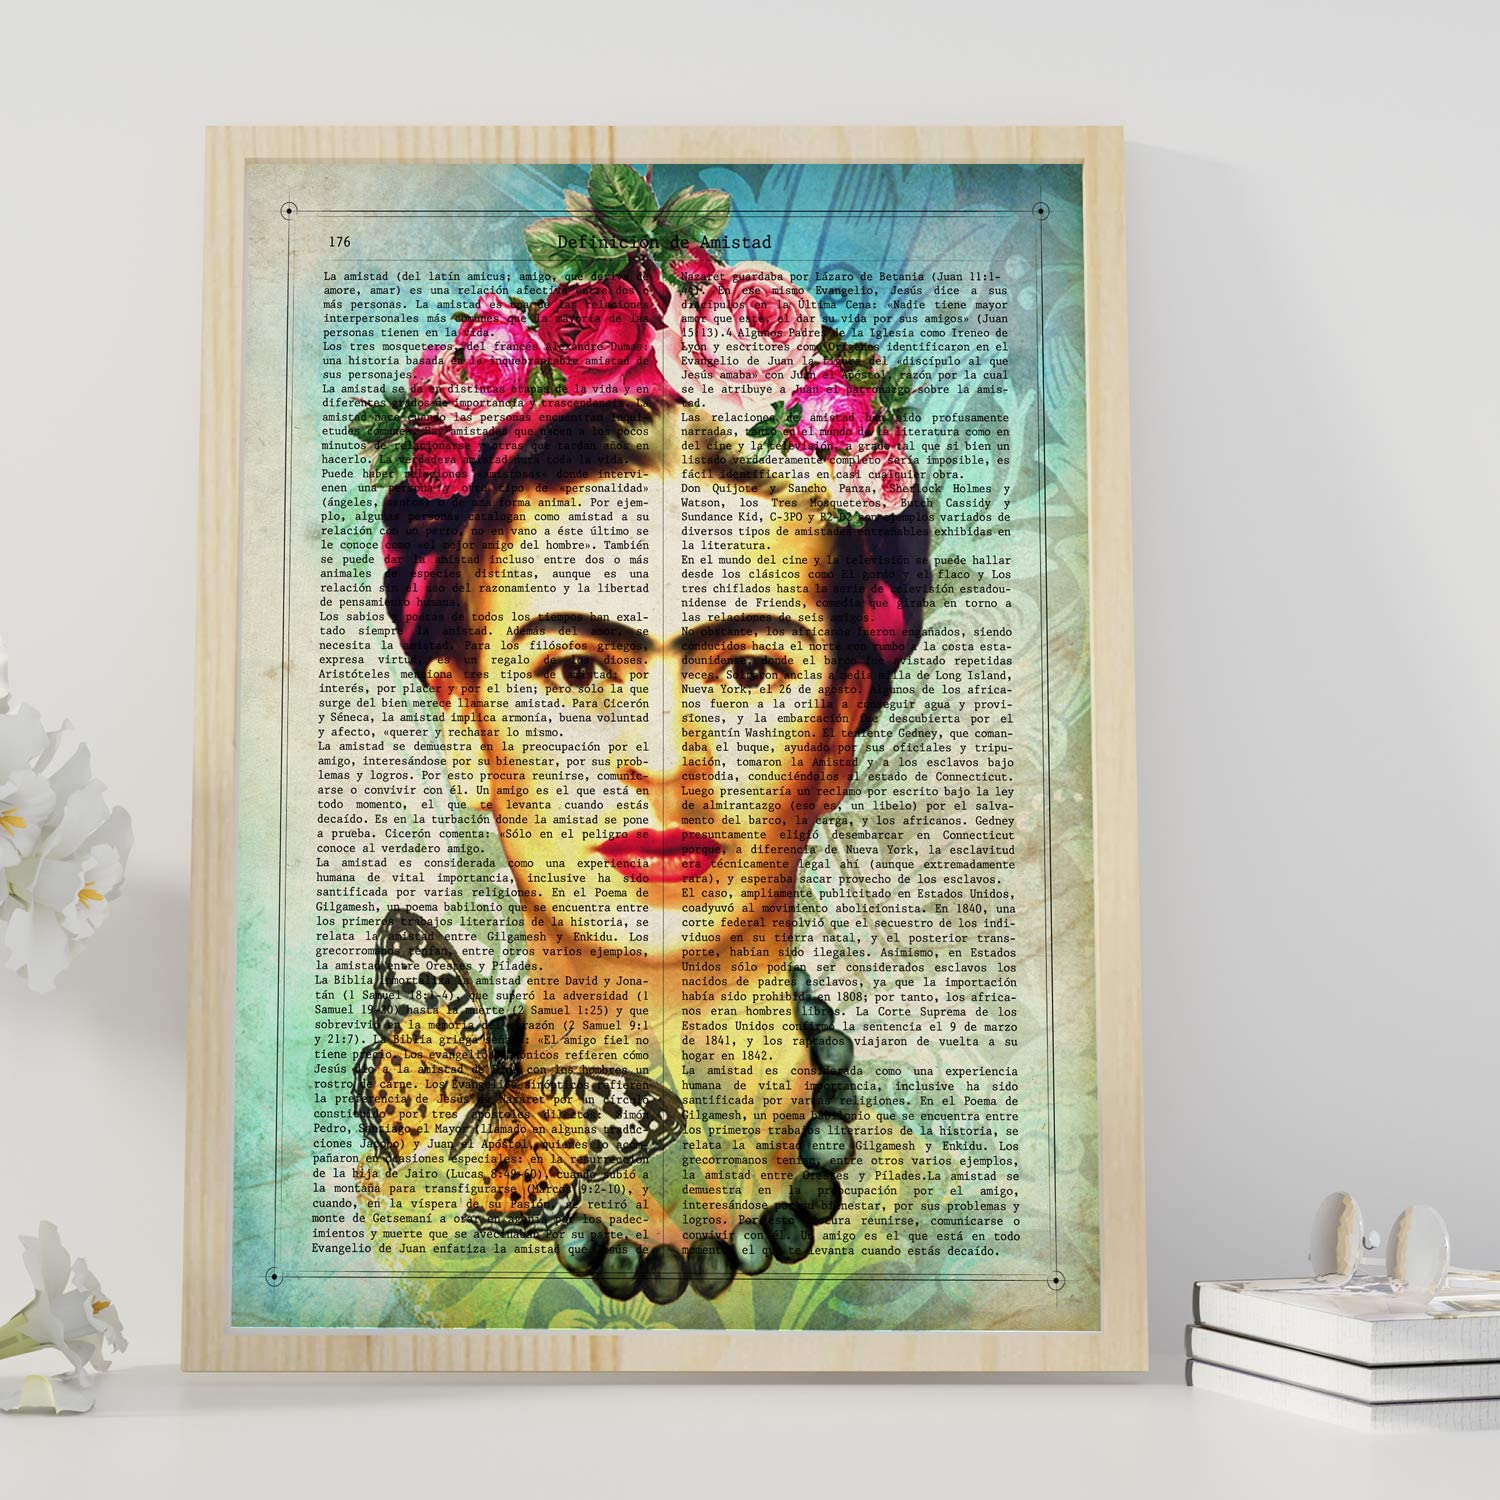 Nacnic Prints Frida Kahlo Definition of Friendship,The Mexican Painter -Tropical wall art, Mexican decorations for home , Mexican wall decor , Aztec art , Chicano art, Mexican Painter Set of 1 - Unframed 11x17 inch Size - 250g Paper - Beautiful Poster Painting for Home Office Living Room